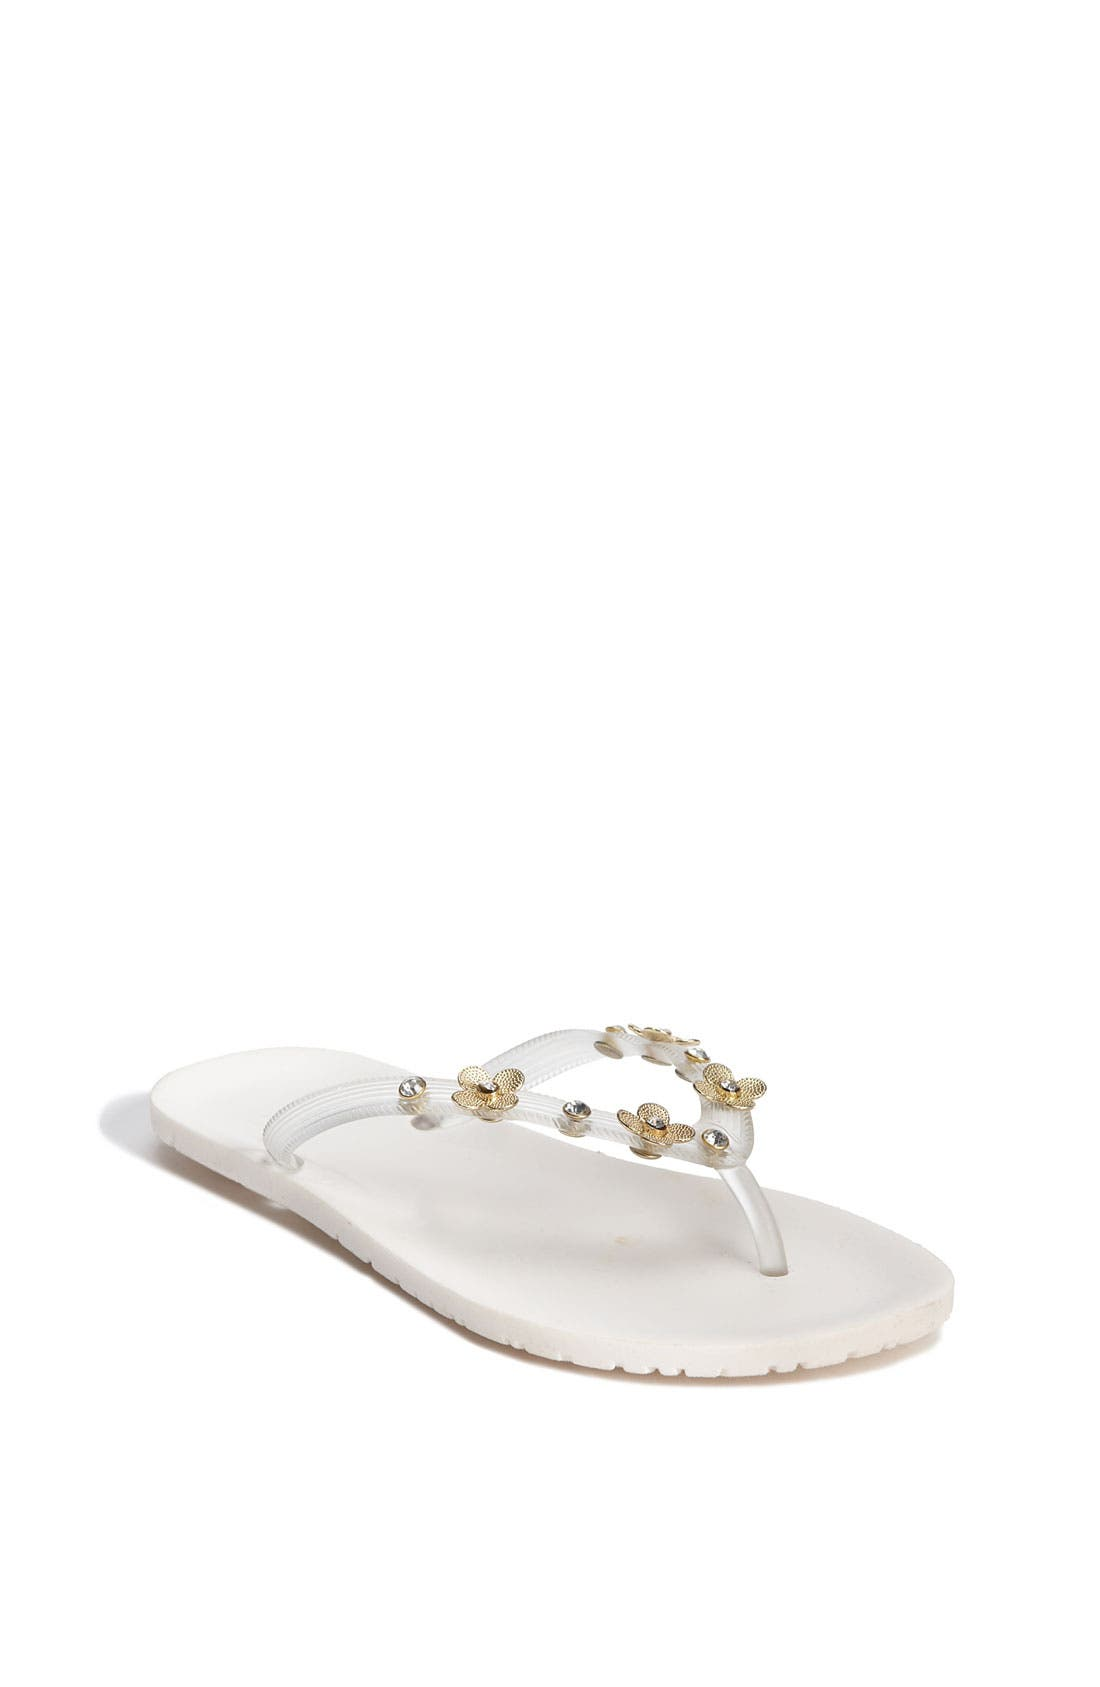 Main Image - Stuart Weitzman 'Meadow' Sandal (Toddler, Little Kid & Big Kid)